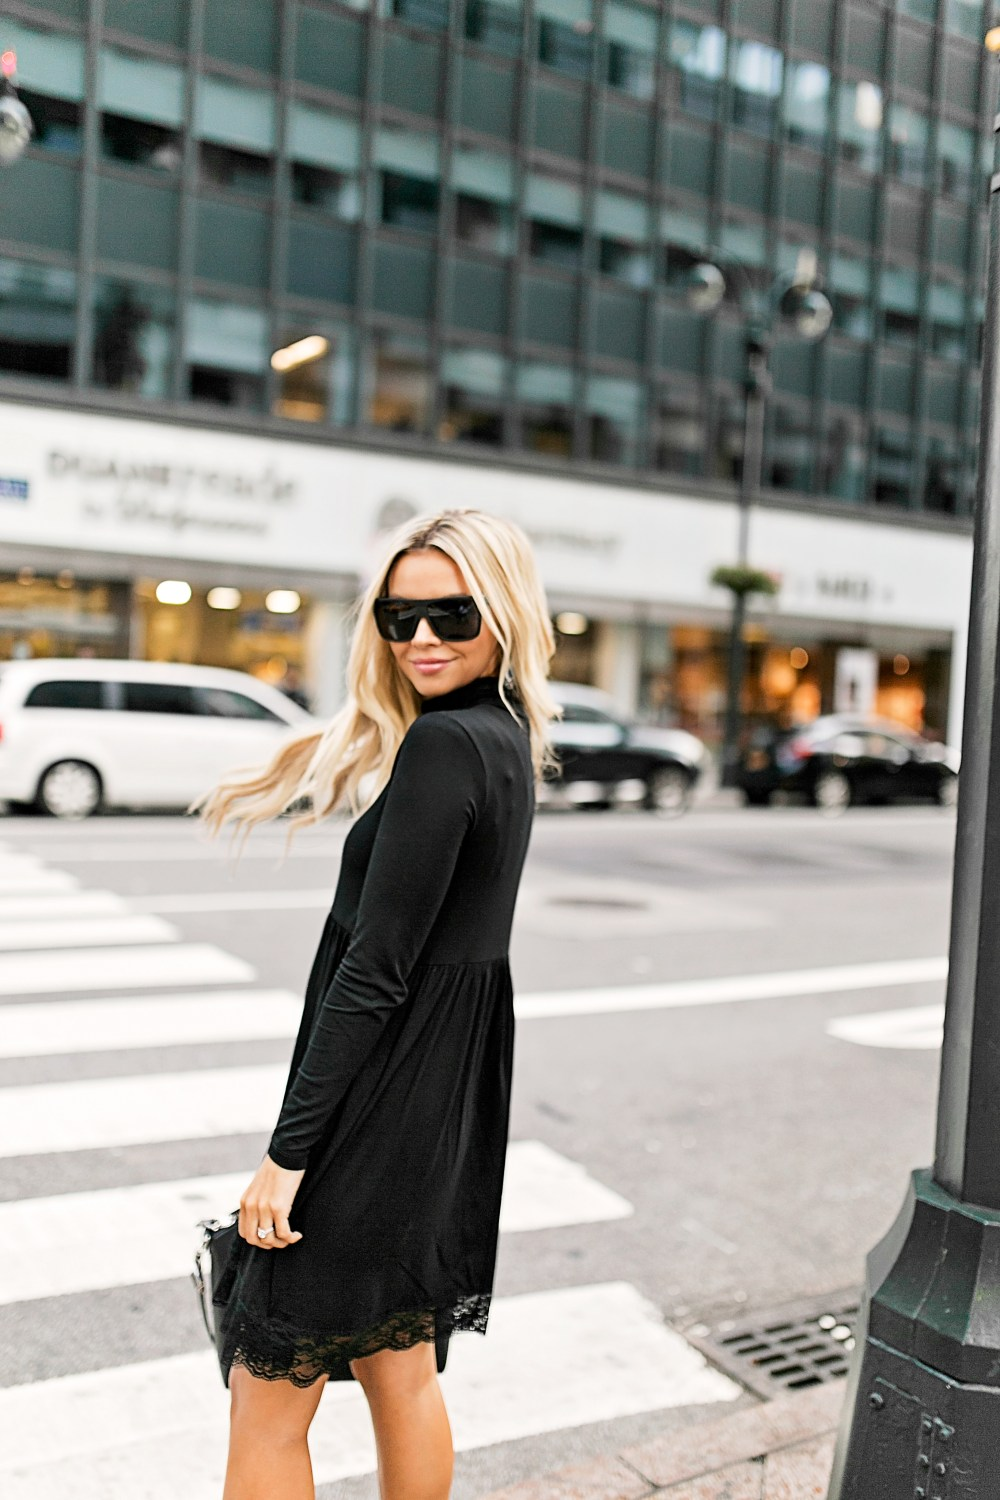 My New York City look in this gorgeous black dress with lace detail and statement booties!